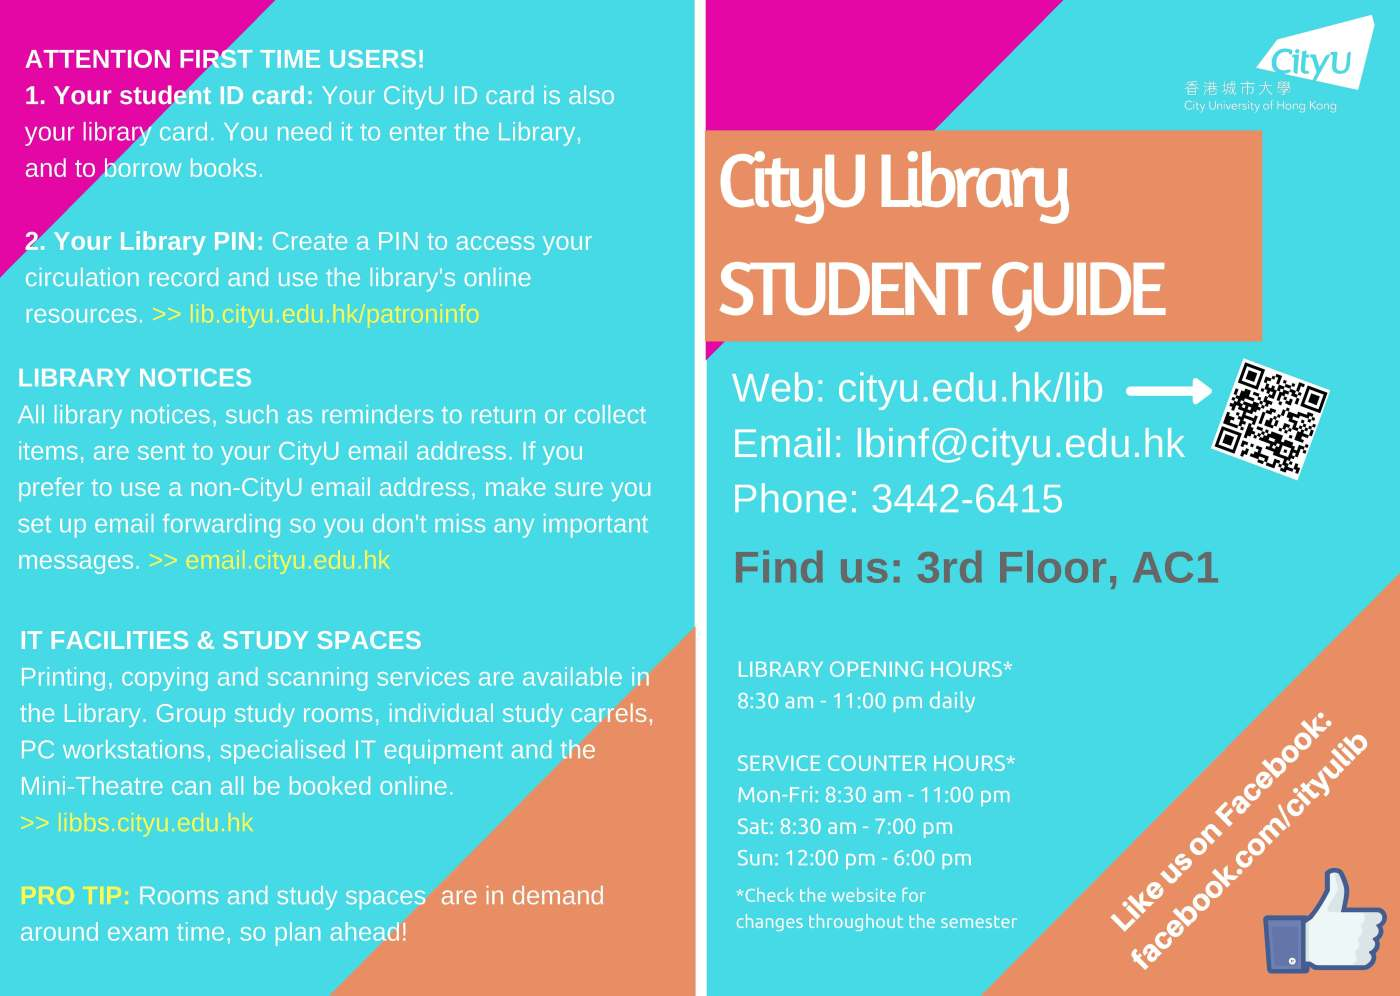 colour-cityu-library-student-guide_page_1